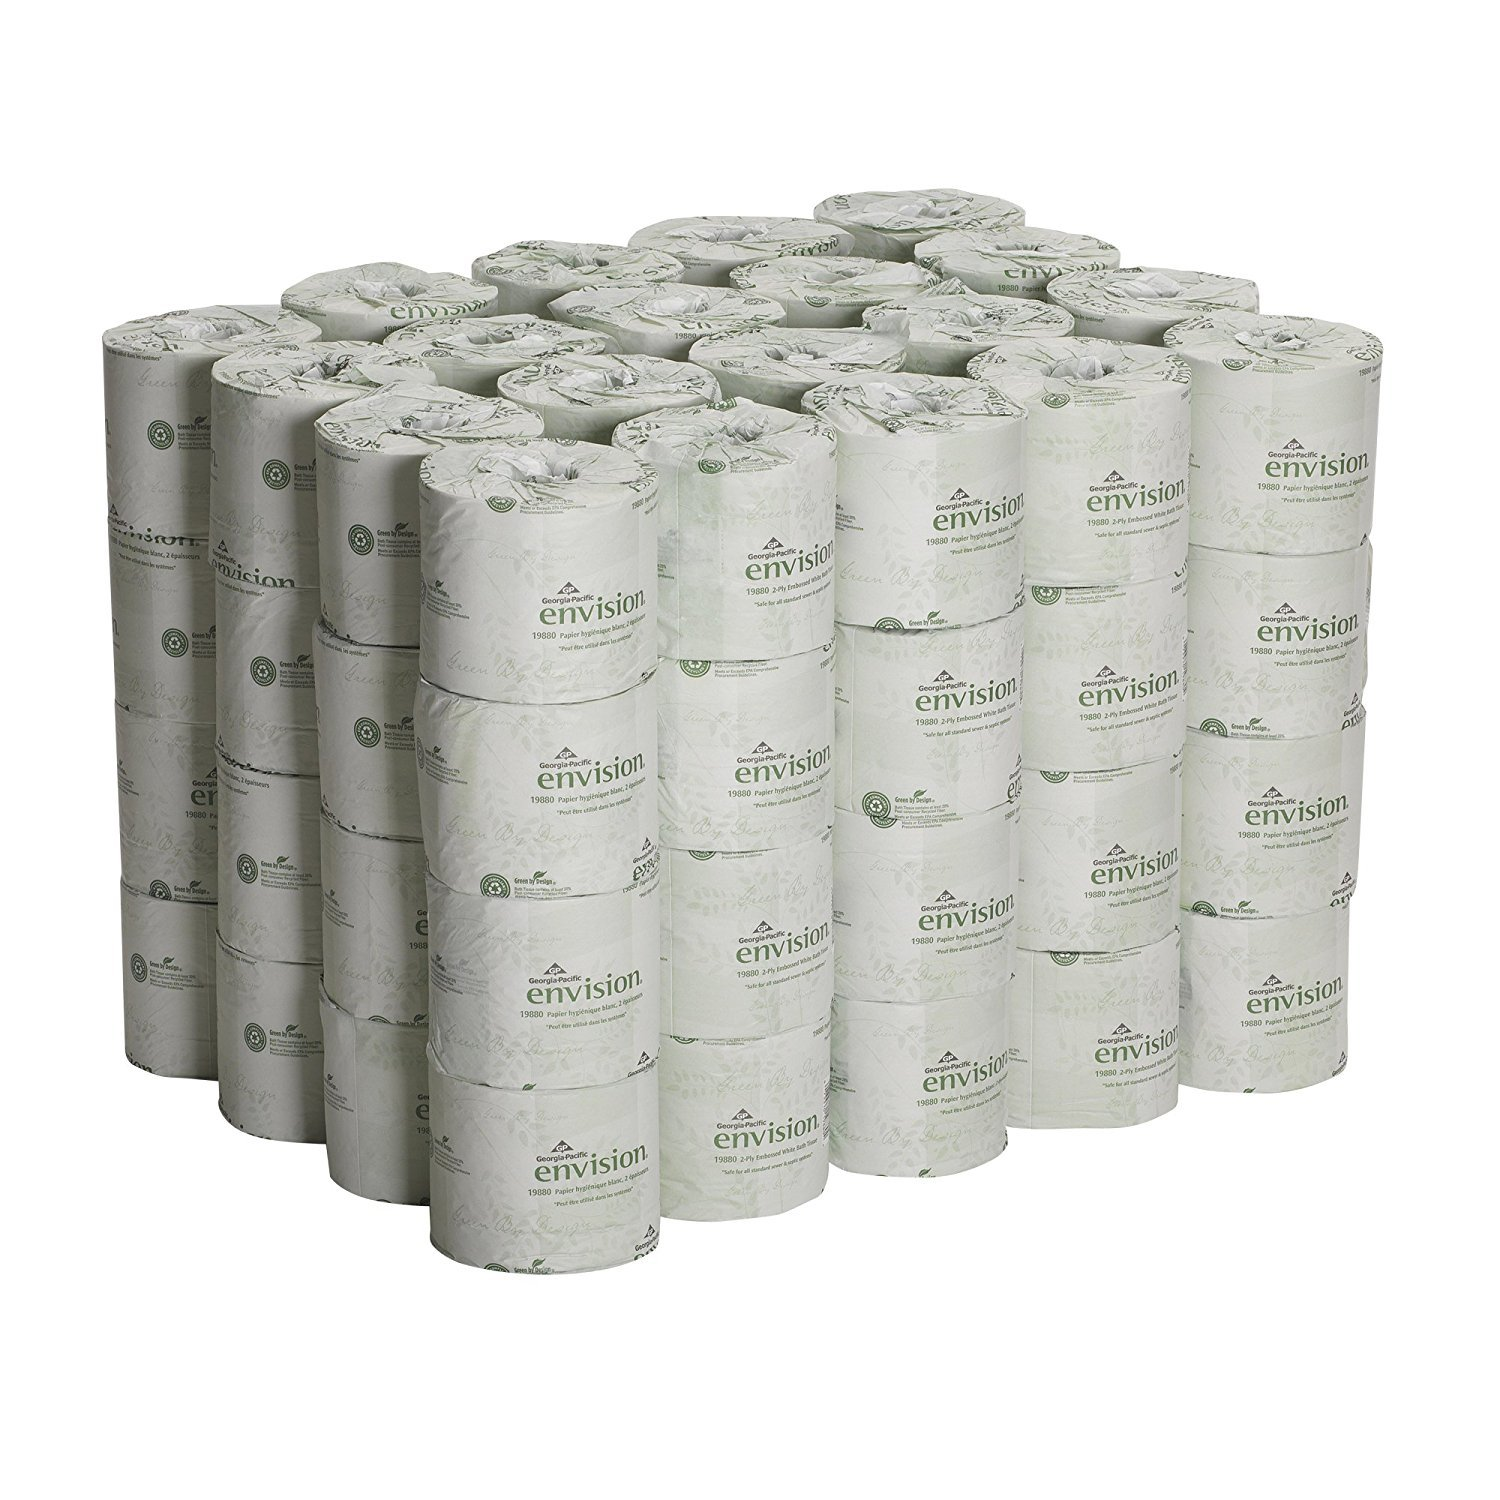 Georgia Pacific dGtbRm Professional 1988001 Bathroom Tissue, 550 Sheets Per Roll, Case of 80, 3 Units by